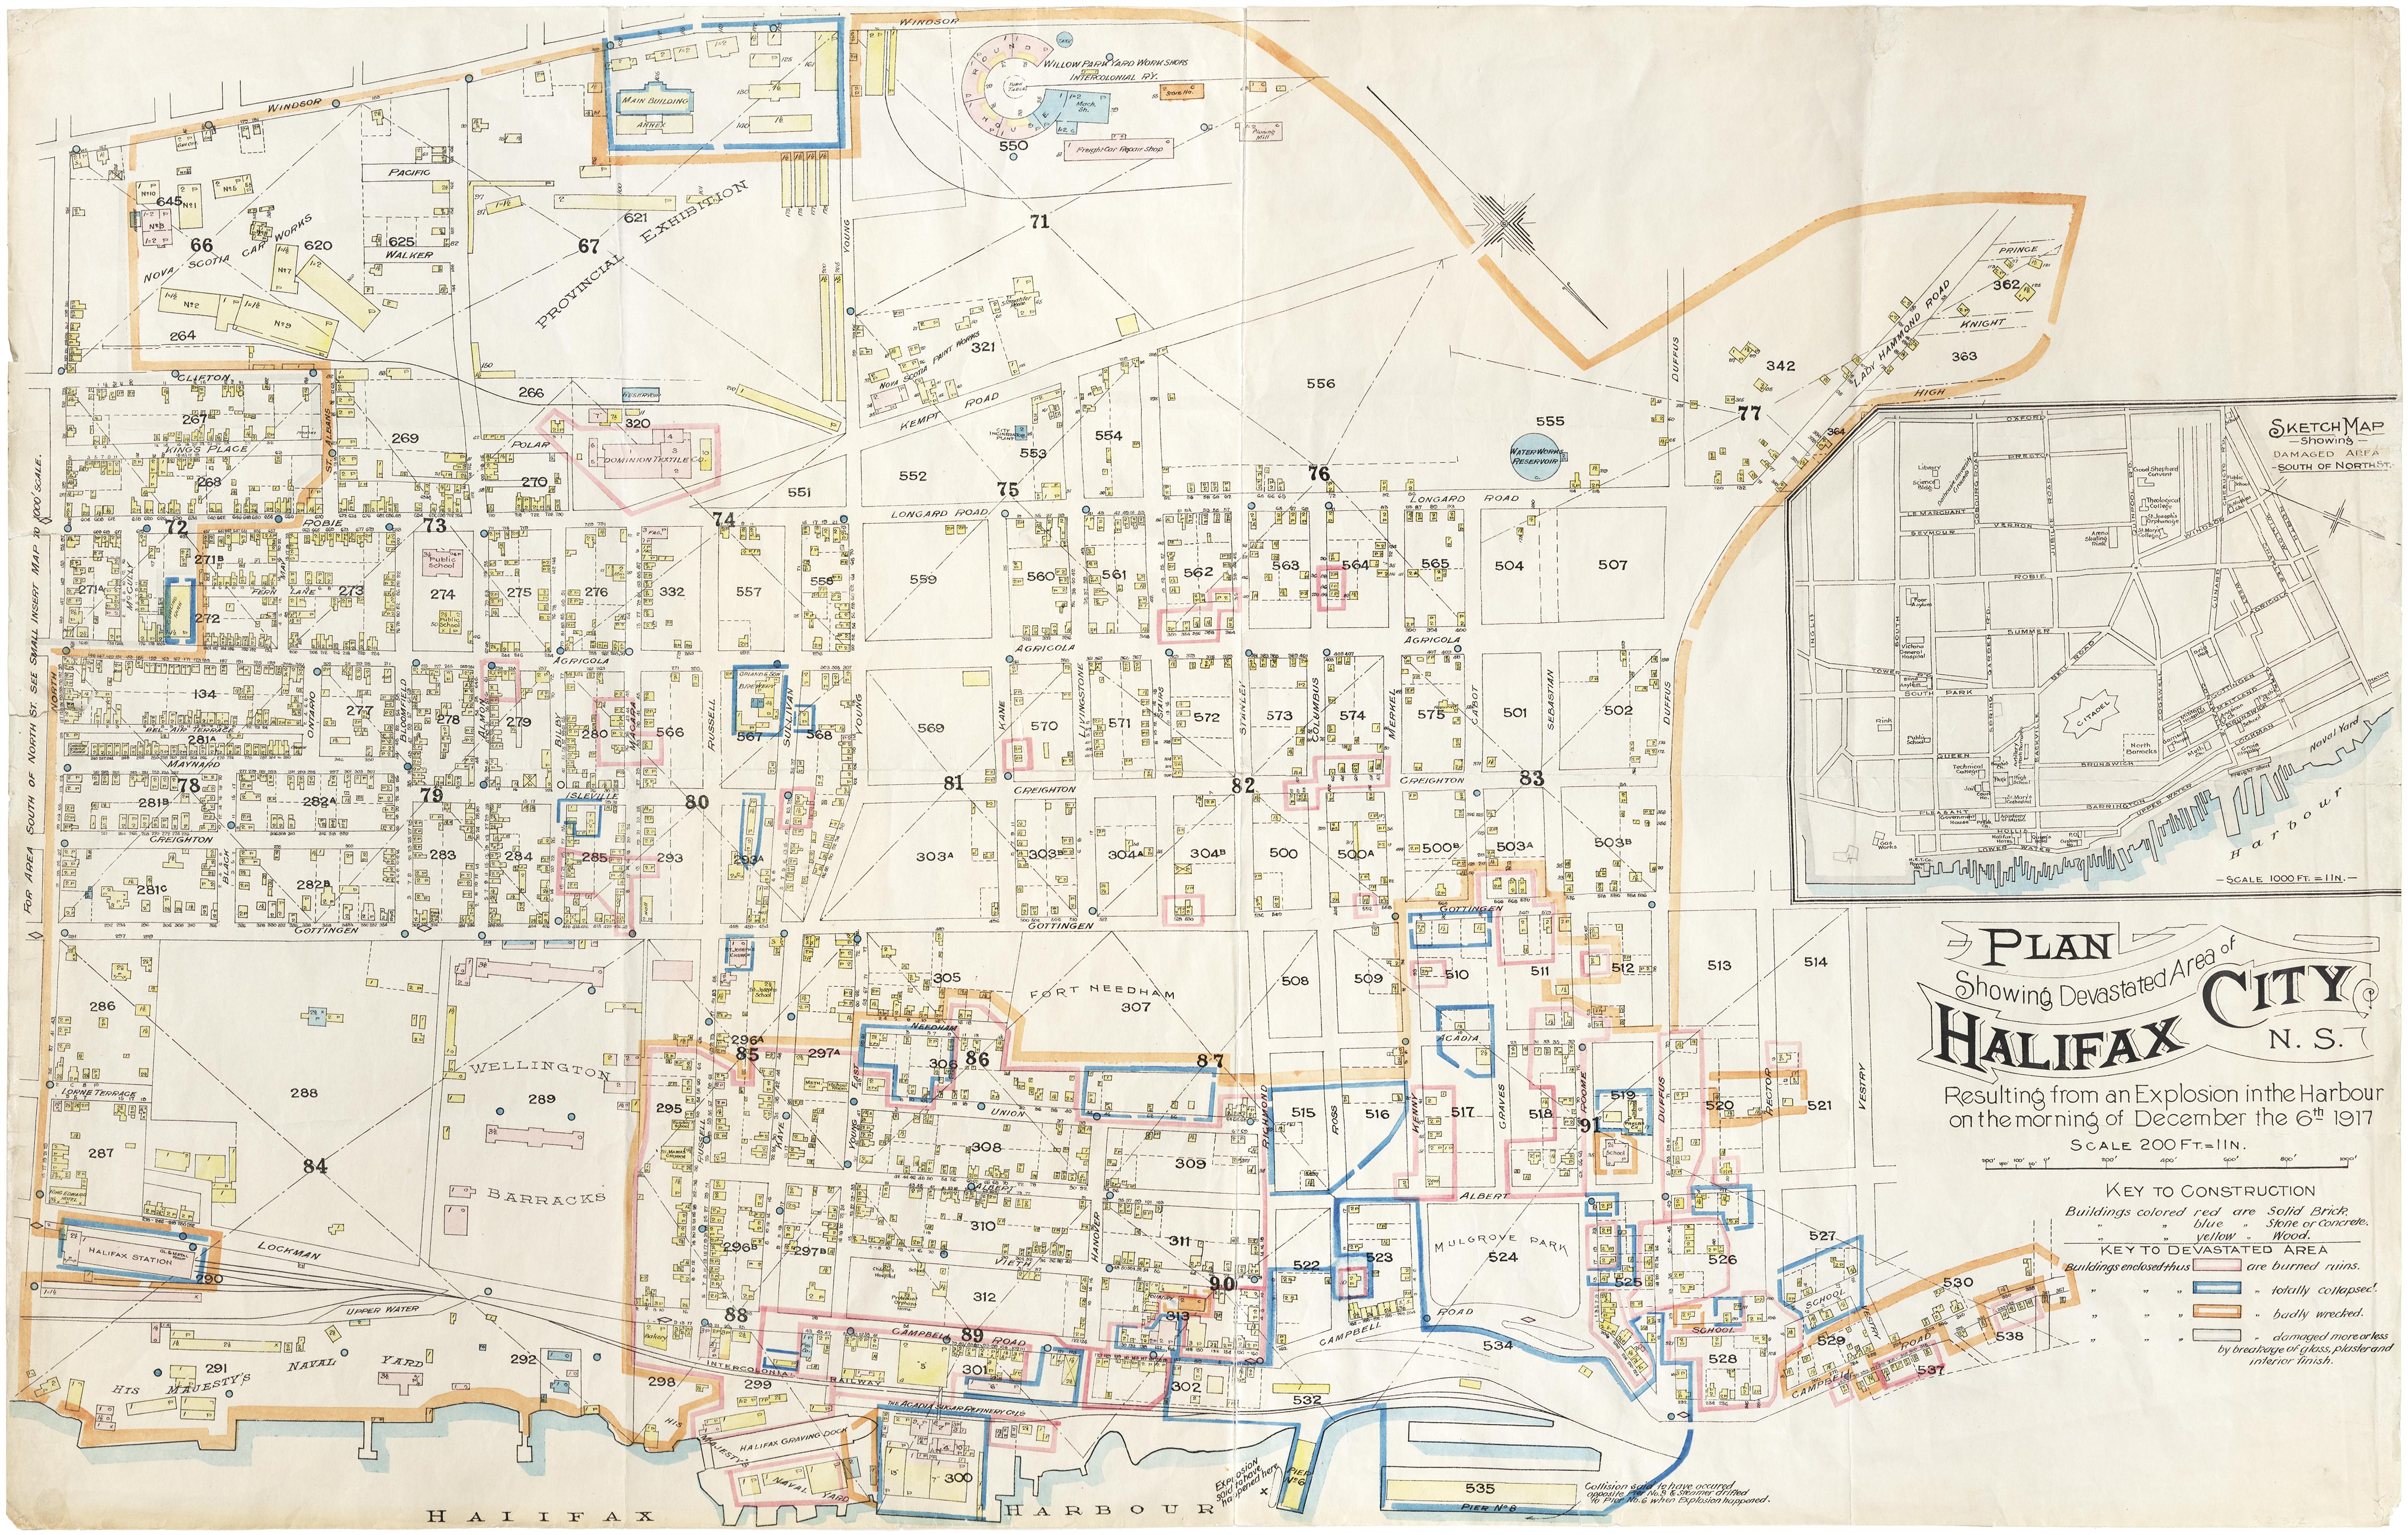 """""""Plan showing devastated area of Halifax City, N.S."""""""